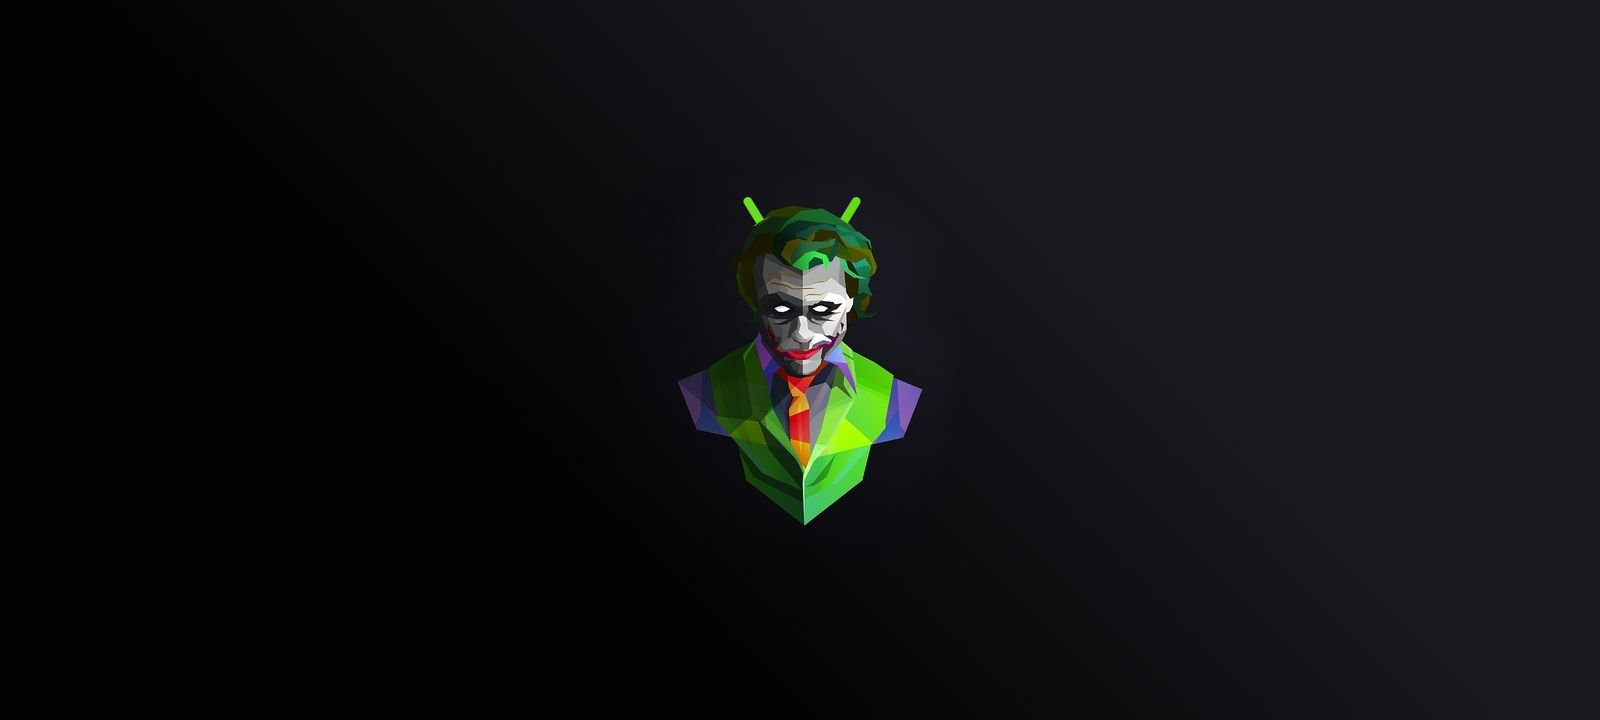 Android: security-новшества Android 11 и нативная версия трояна Joker